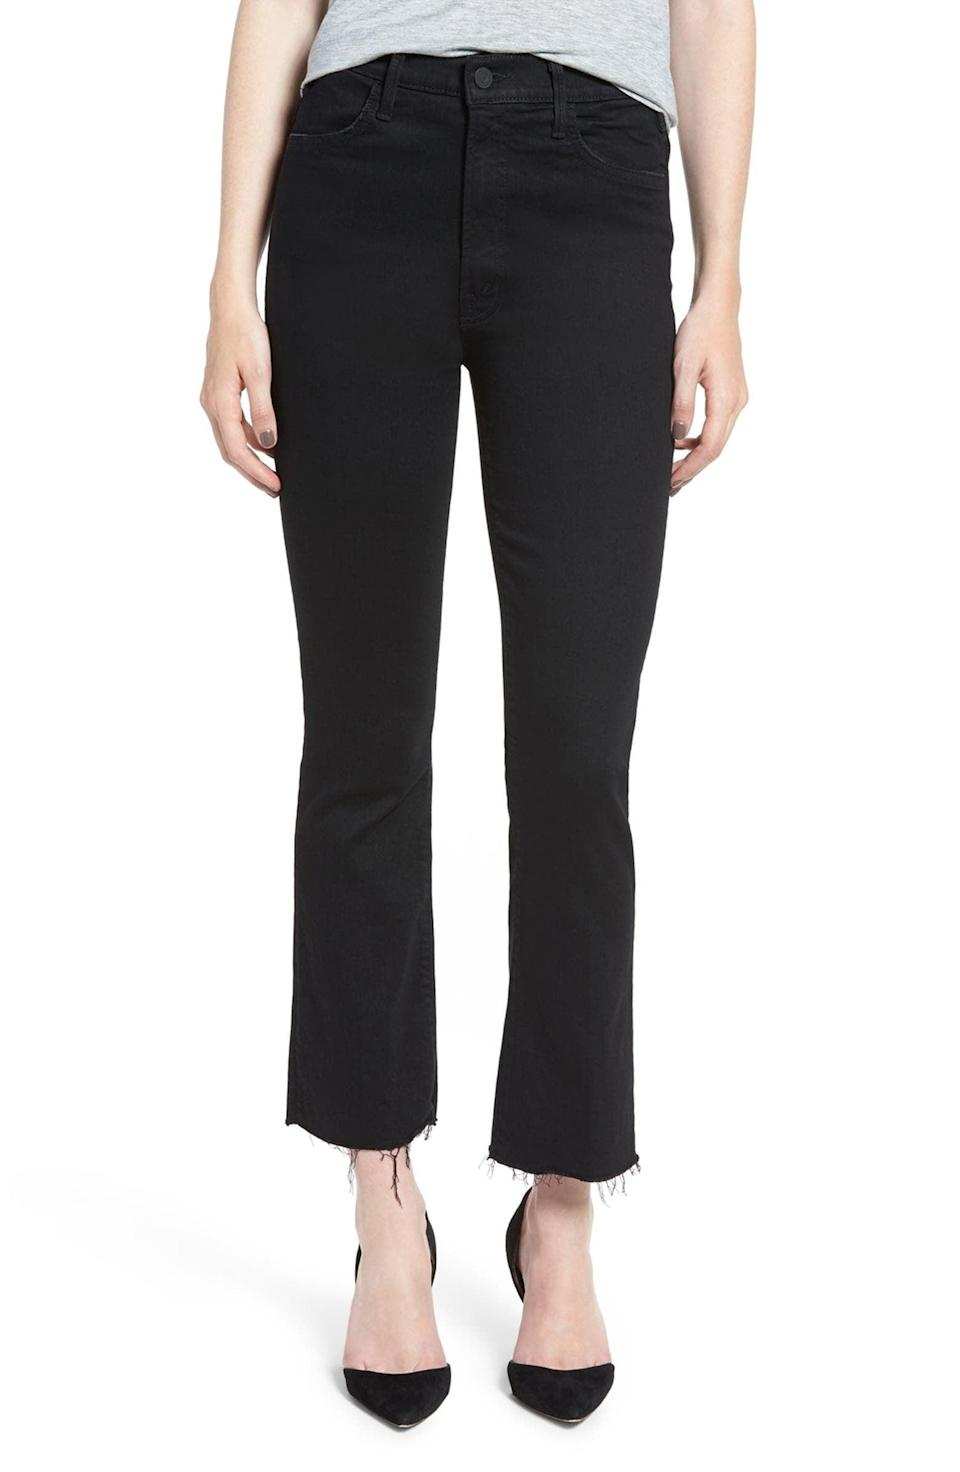 <p>These <span>MOTHER The Hustler High Waist Ankle Fray Jeans</span> ($198) would look great with heels or booties.</p>